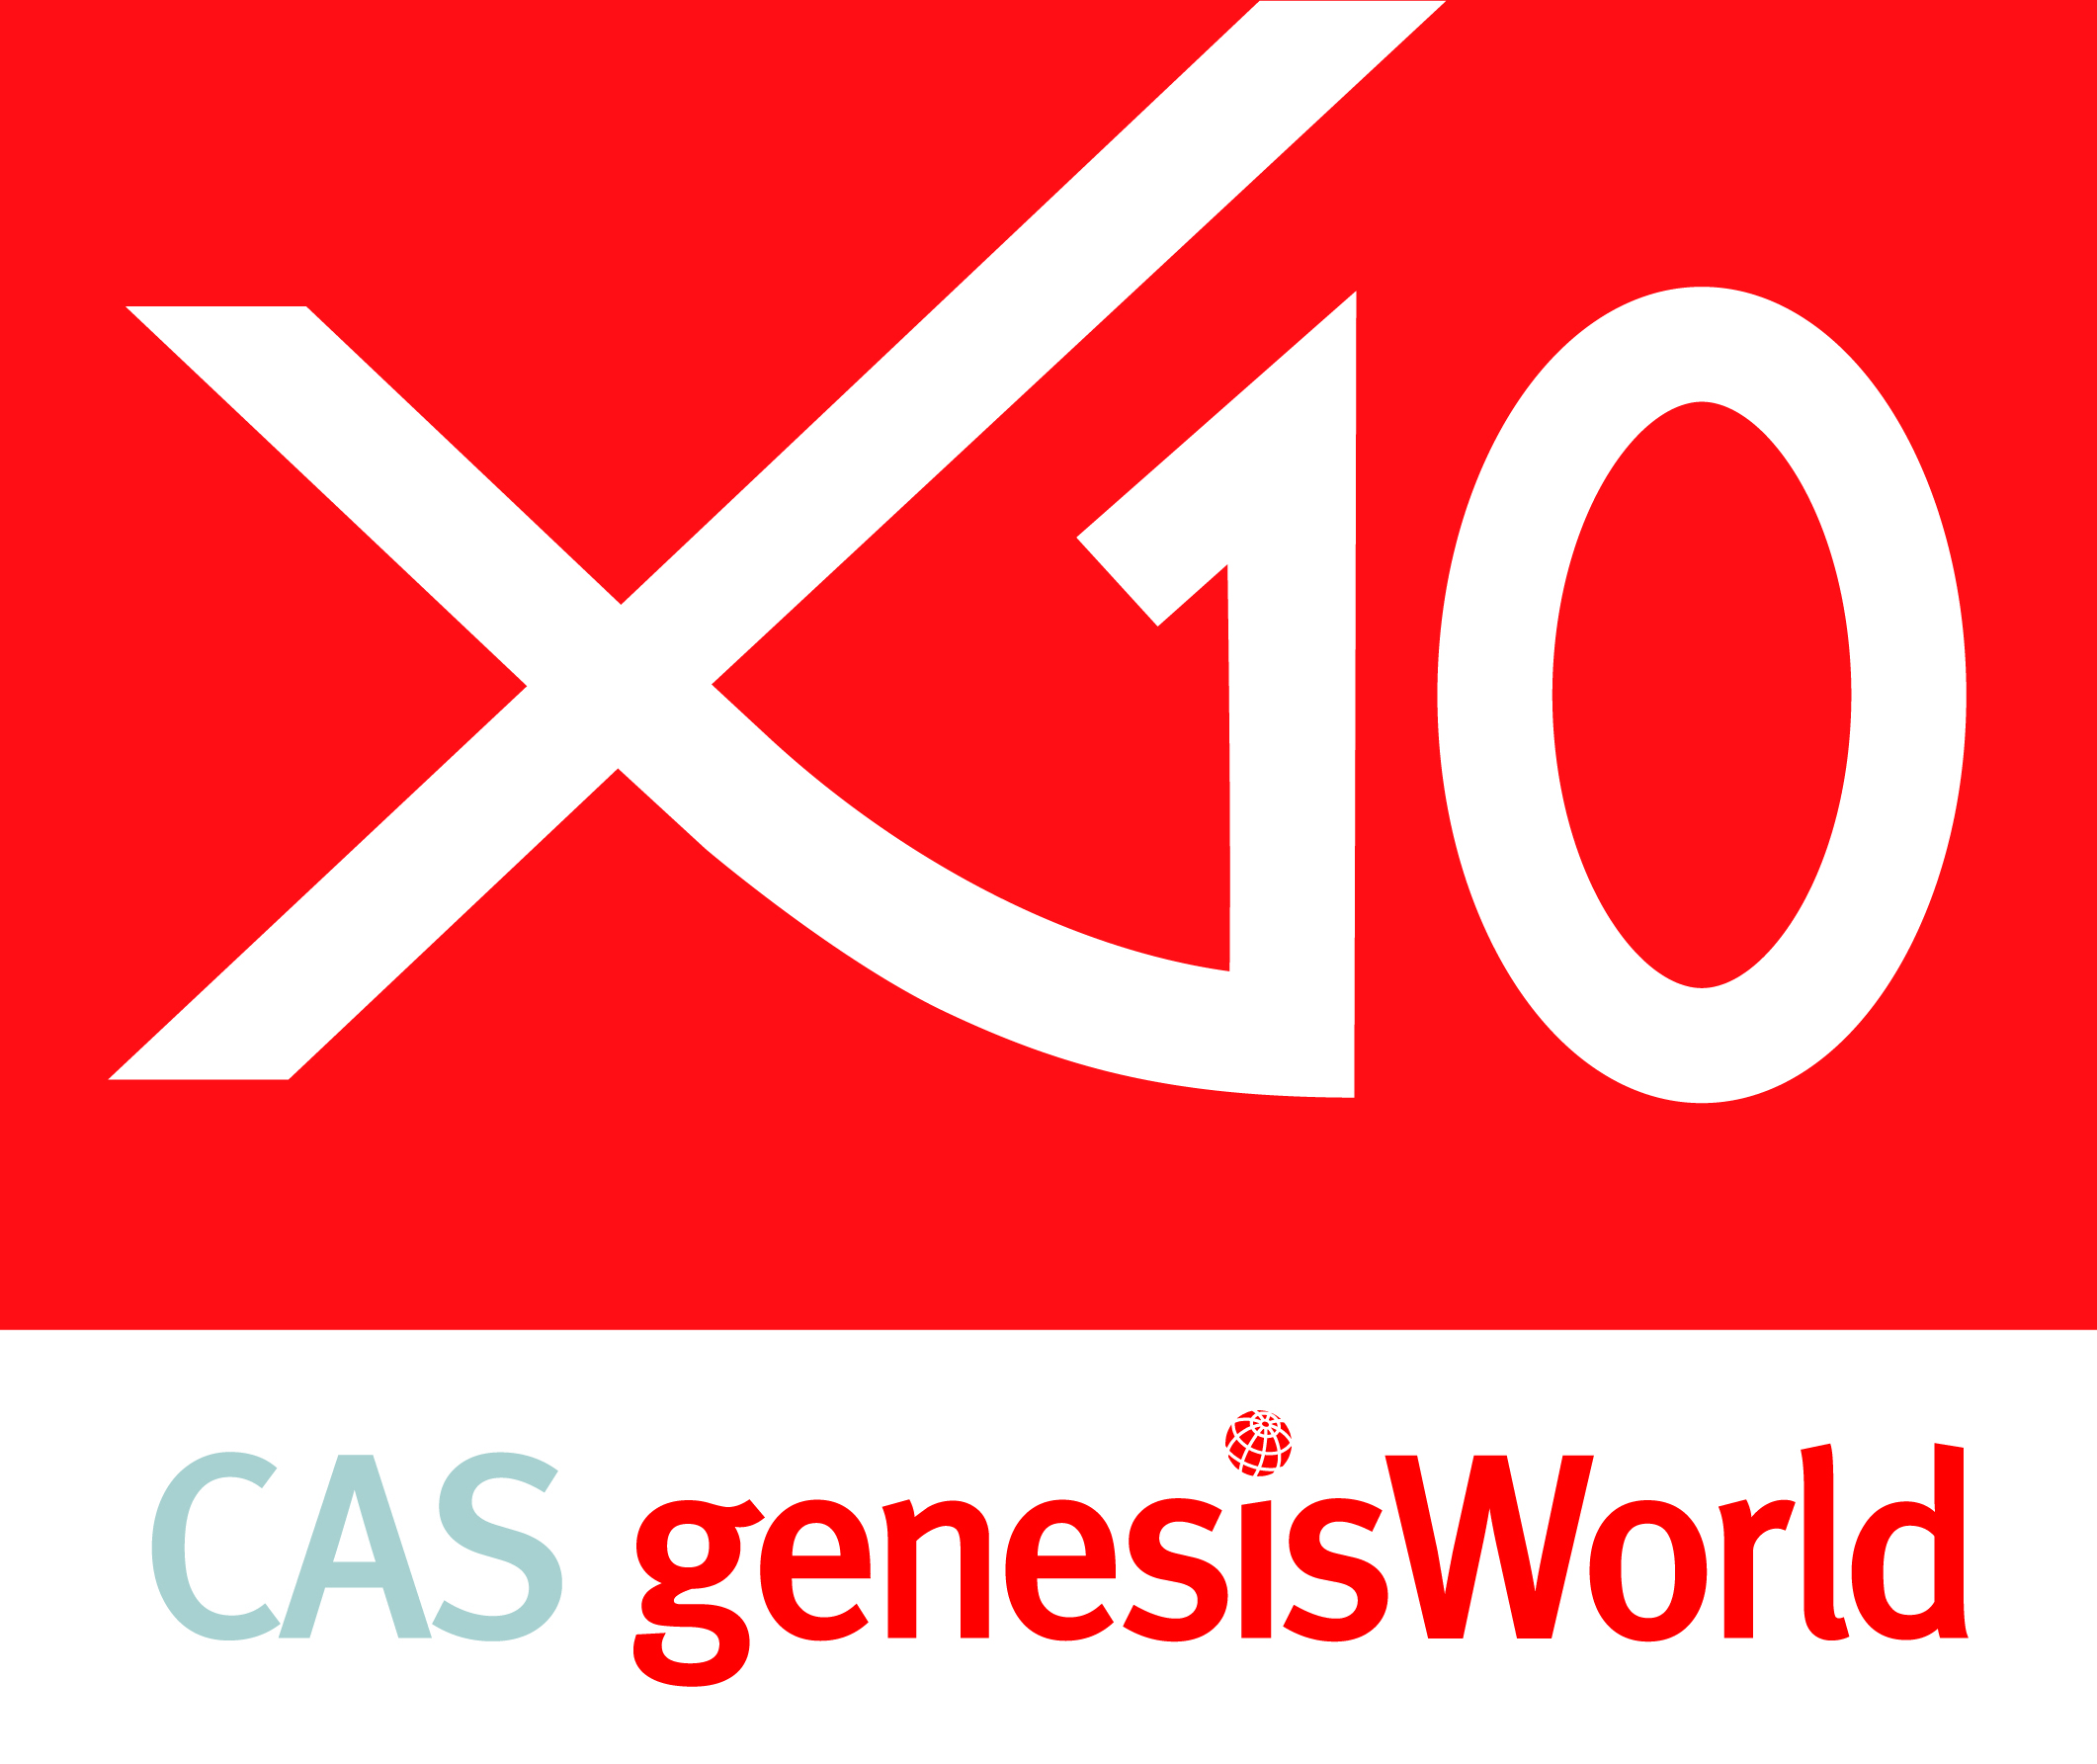 CAS genesisWorld x10